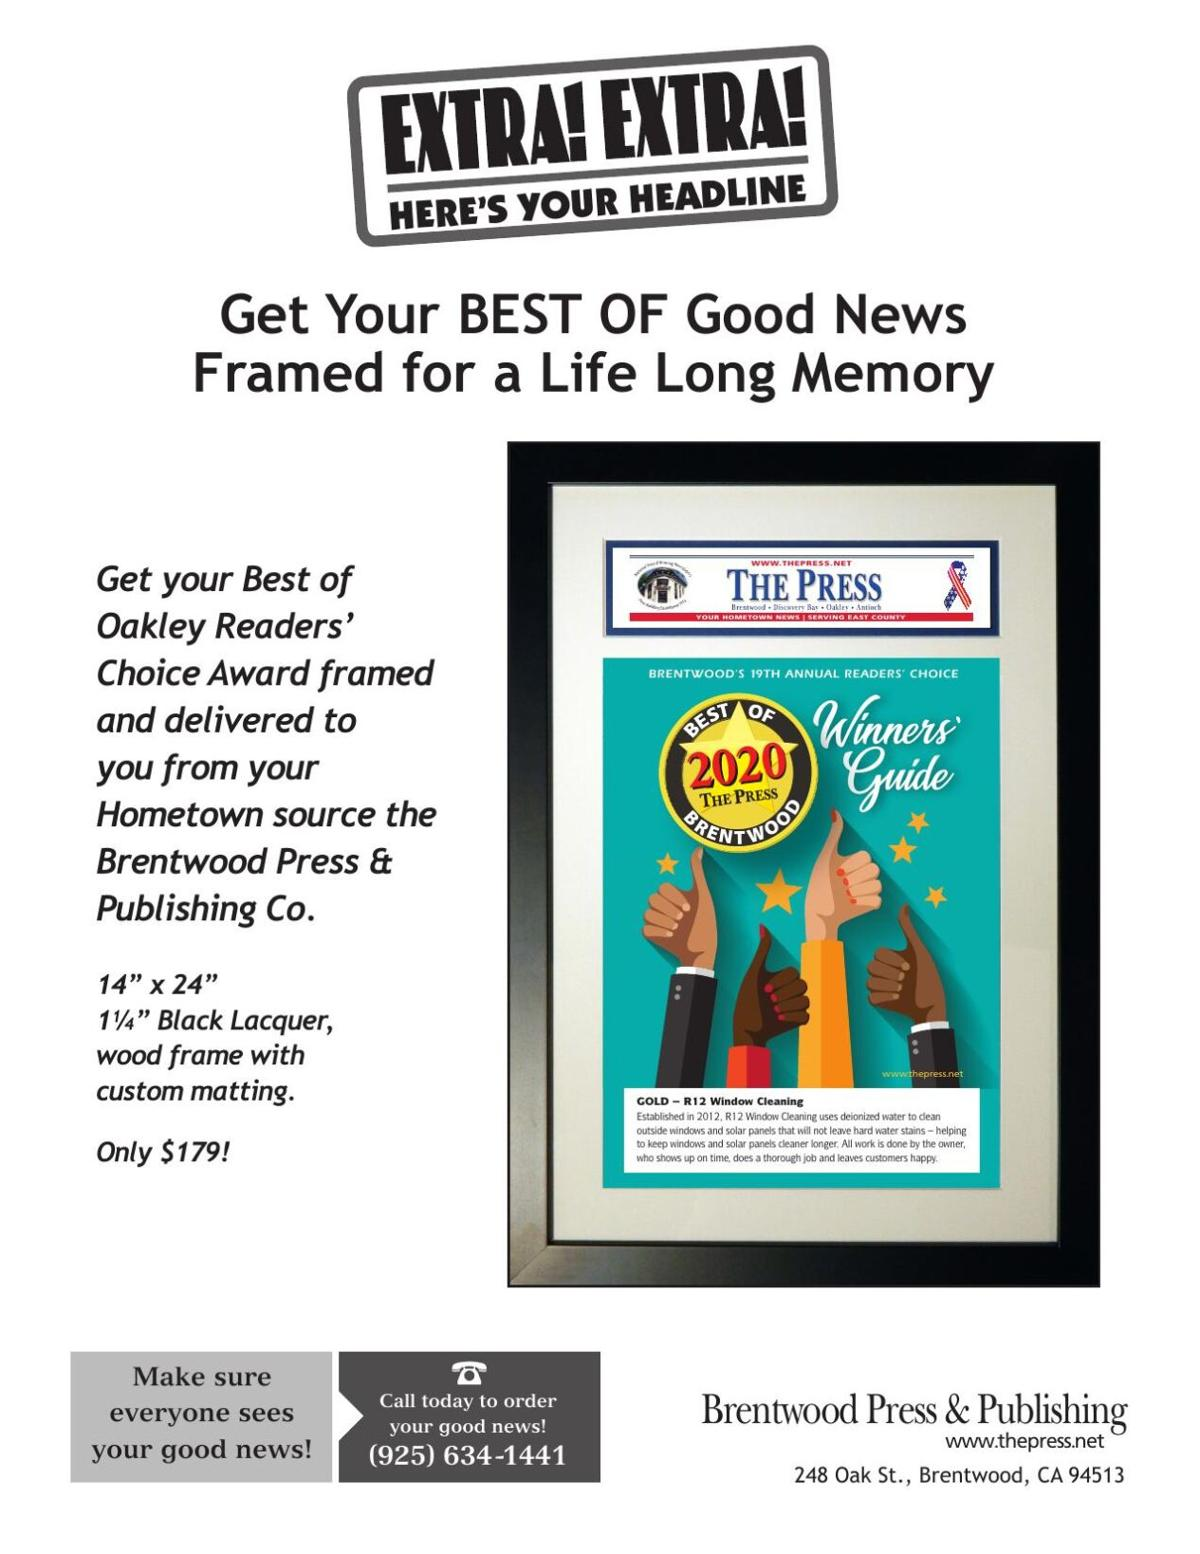 Get your Best of Oakley Readers' Choice Award framed!